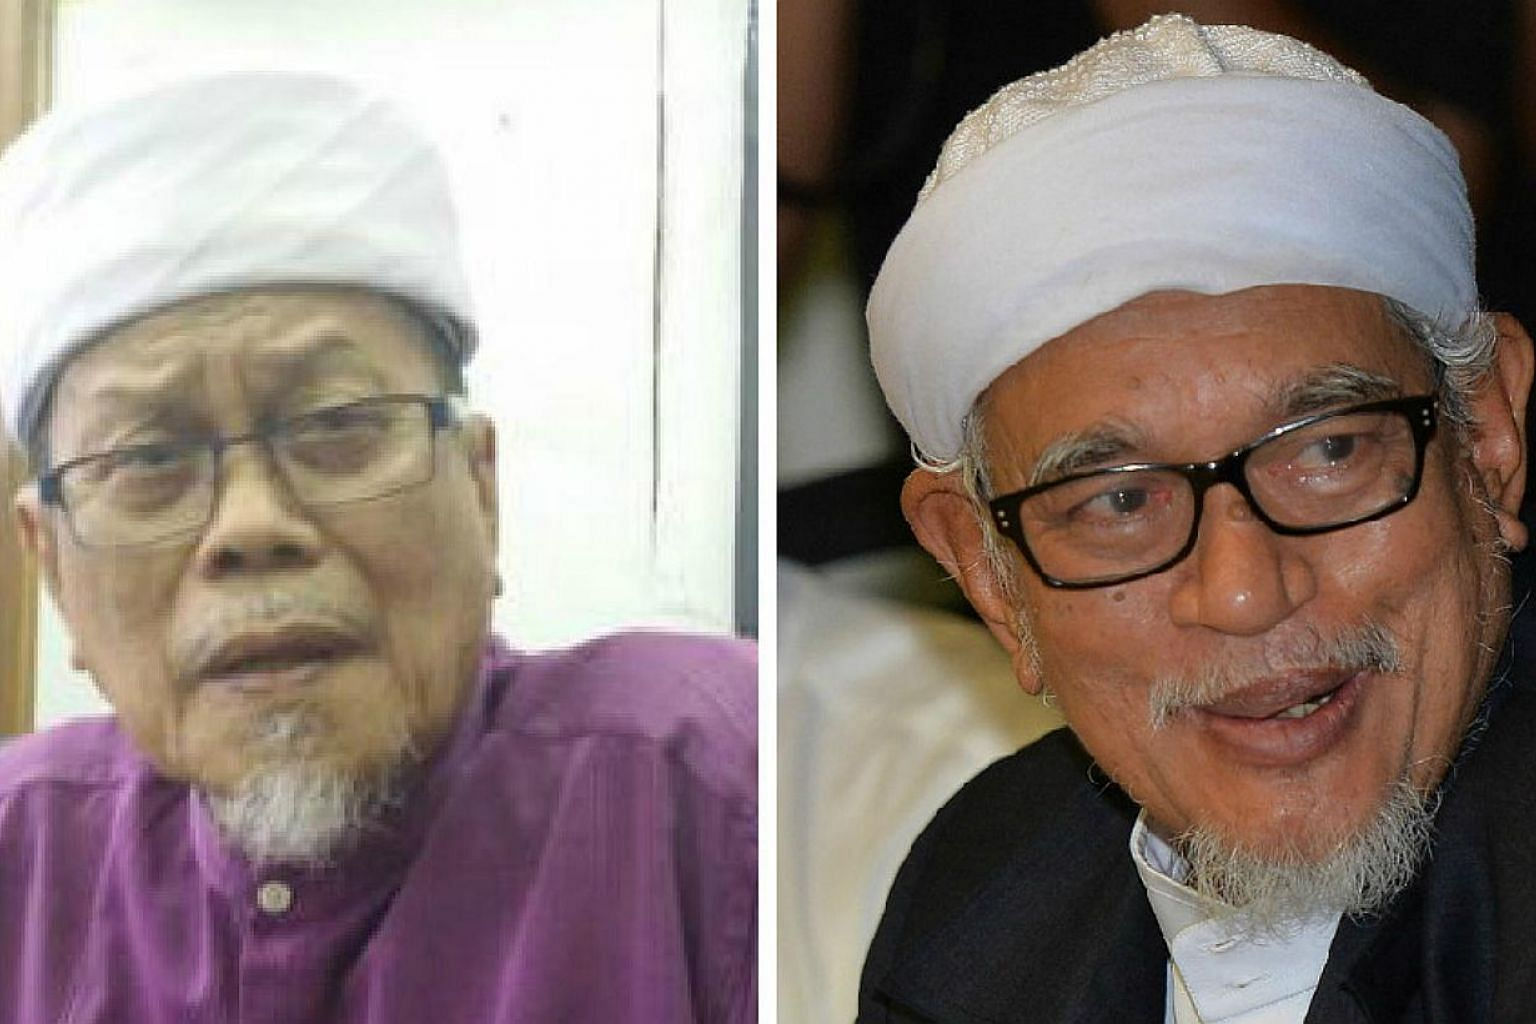 Veteran Parti Islam SeMalaysia (PAS) leader Ahmad Awang (left) will challenge long-term president Datuk Seri Abdul Hadi Awang for the leadership of the Malaysian opposition party at the party polls in June. --PHOTOS: THE STAR/ASIA NEWS NETWORK&